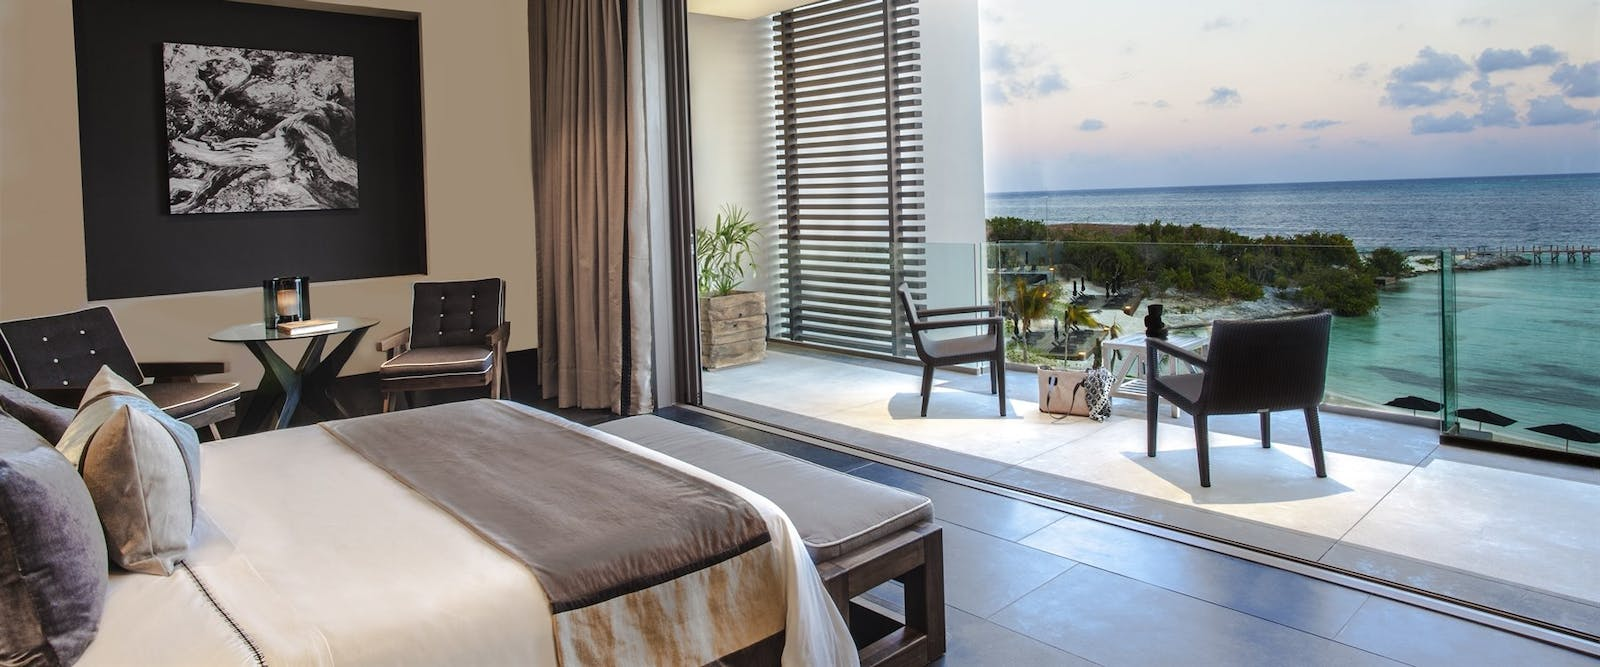 Ocean Suite at NIZUC Resort and Spa, Riviera Maya